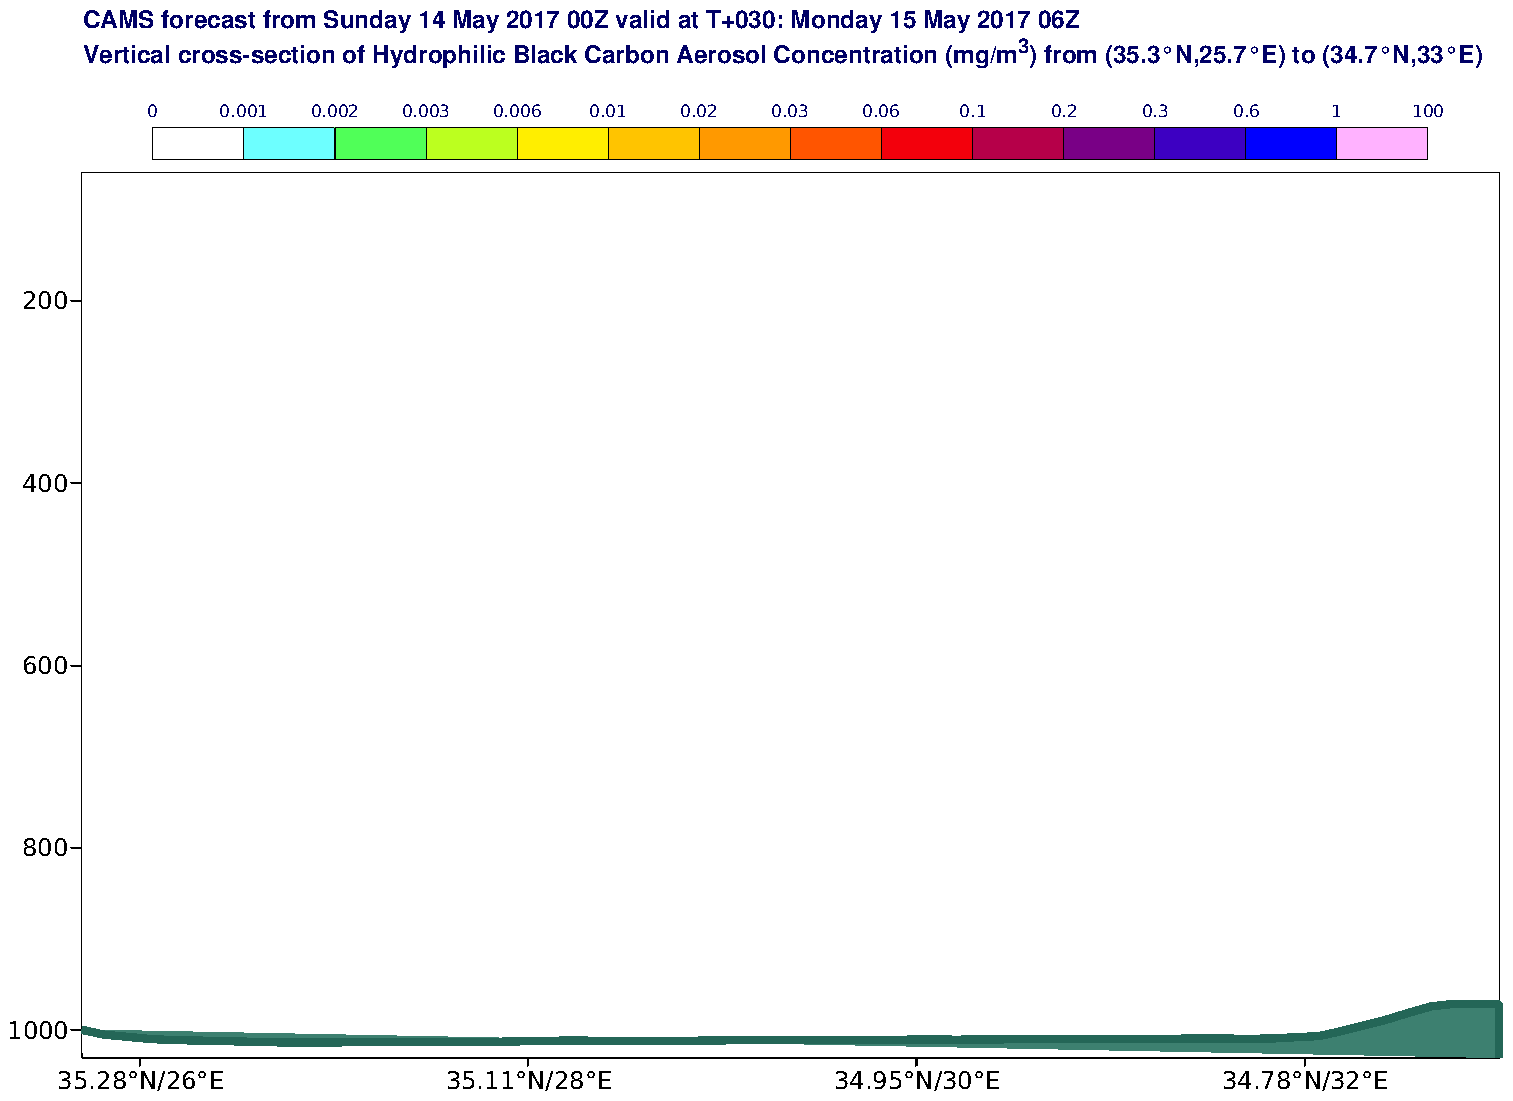 Vertical cross-section of Hydrophilic Black Carbon Aerosol Concentration (mg/m3) valid at T30 - 2017-05-15 06:00